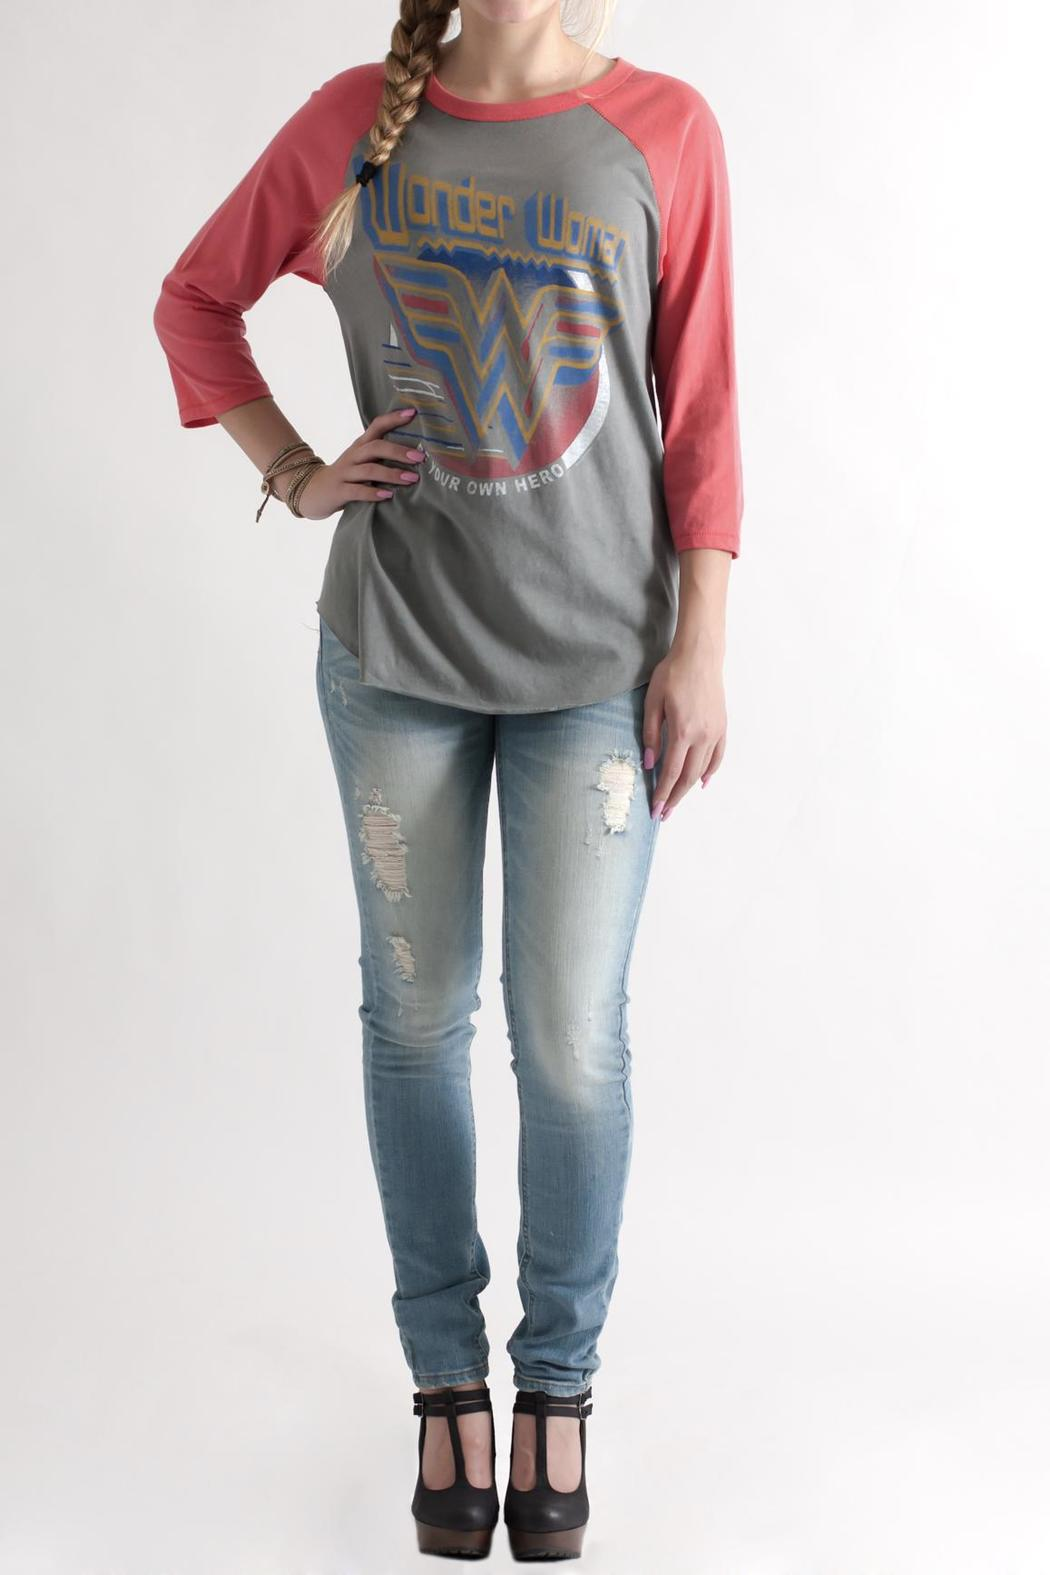 Junk Food Clothing Wonder Woman Raglan From Philadelphia By May 23  Shoptiques-1992